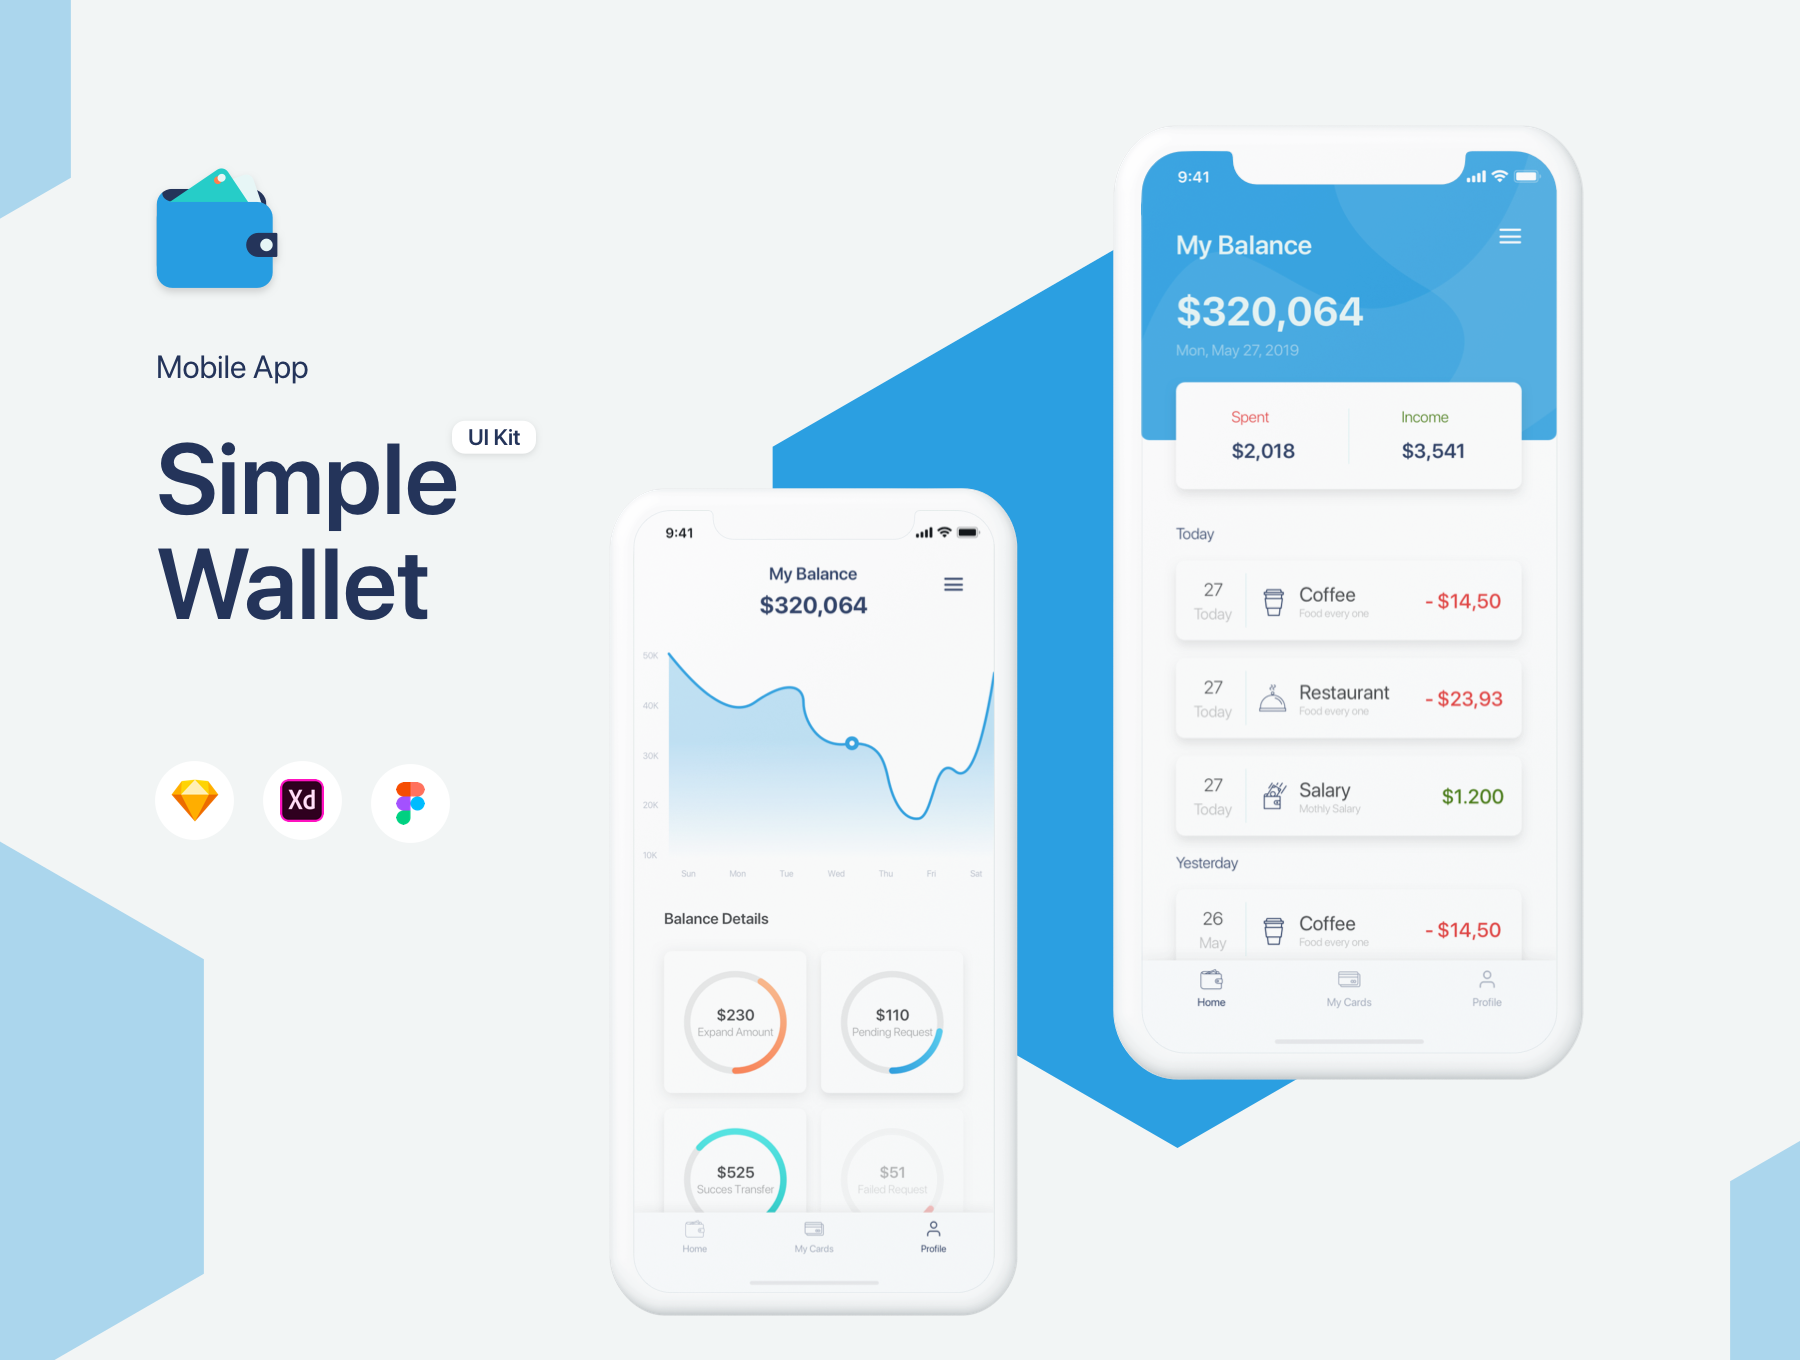 钱包理财工具界面套装下载 iOS Ui app设计[Sketch] Simple Wallet App UI UX Kit  APP UI UX